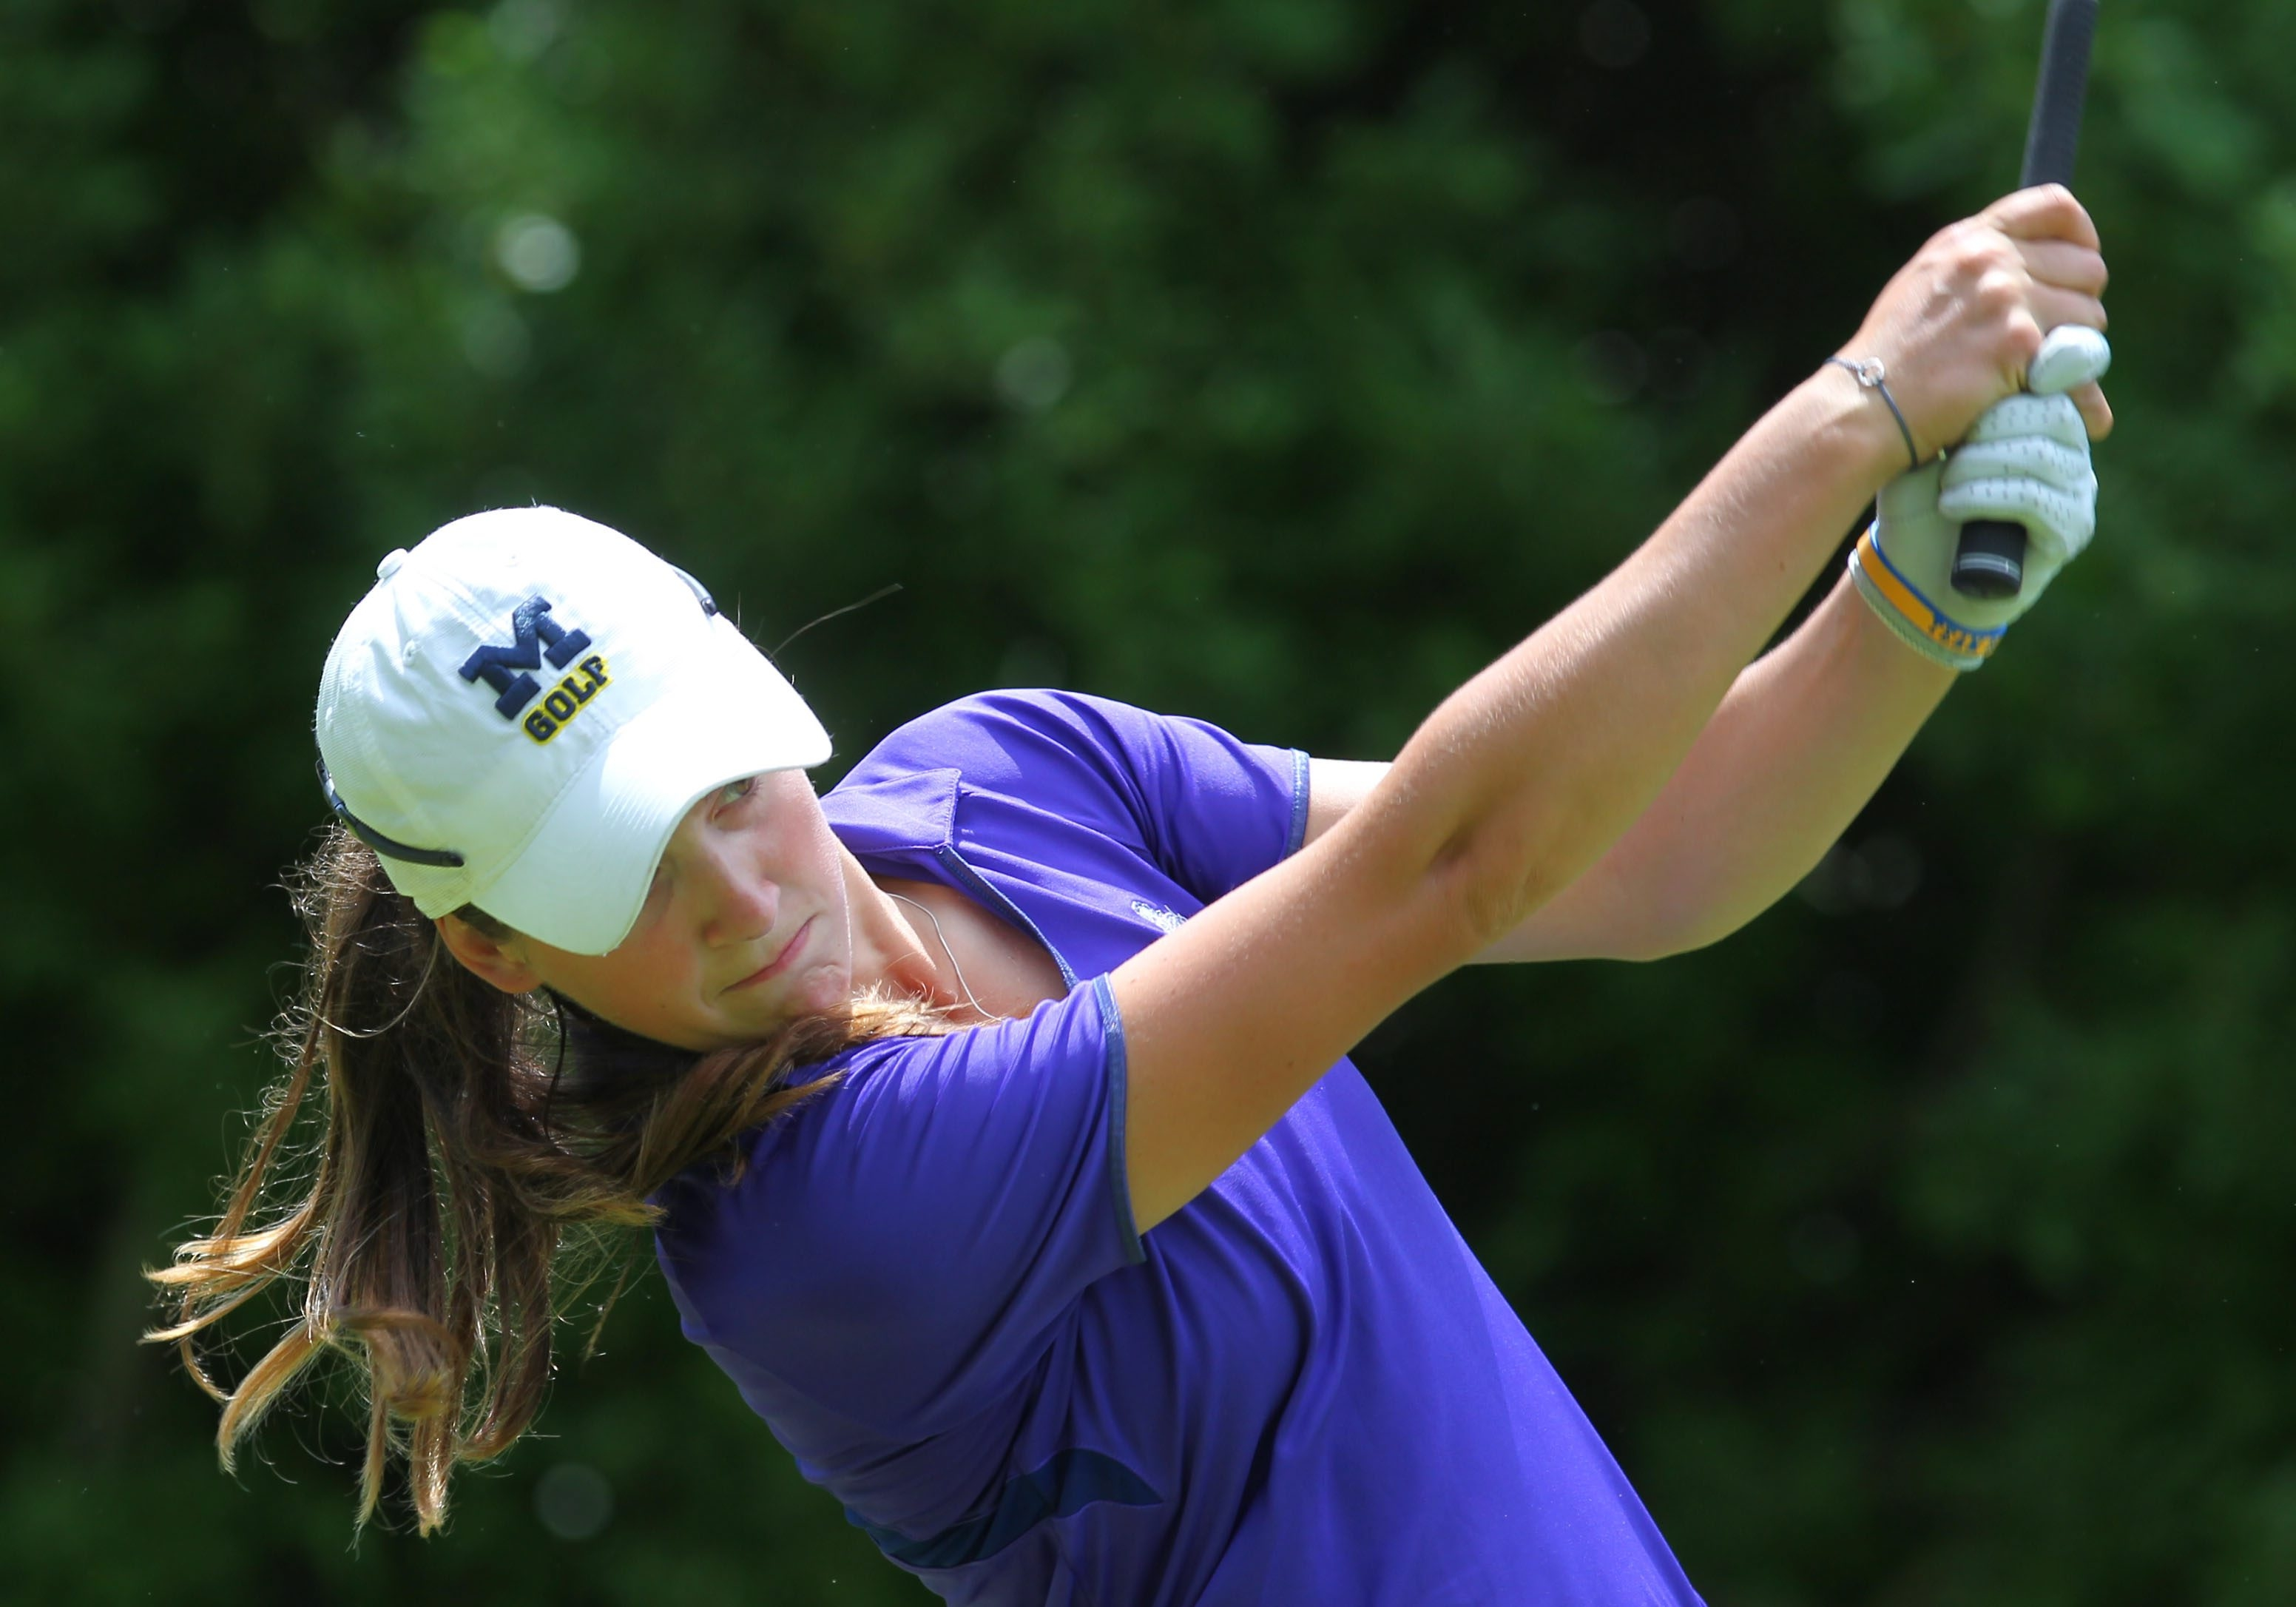 Catherine Peters of Clarence Center watches her tee shot on the par 3 18th during the first round of the Women's Porter Cup at Niagara Falls CC in Lewiston Thursday, June 11, 2014.  (Mark Mulville/Buffalo News)